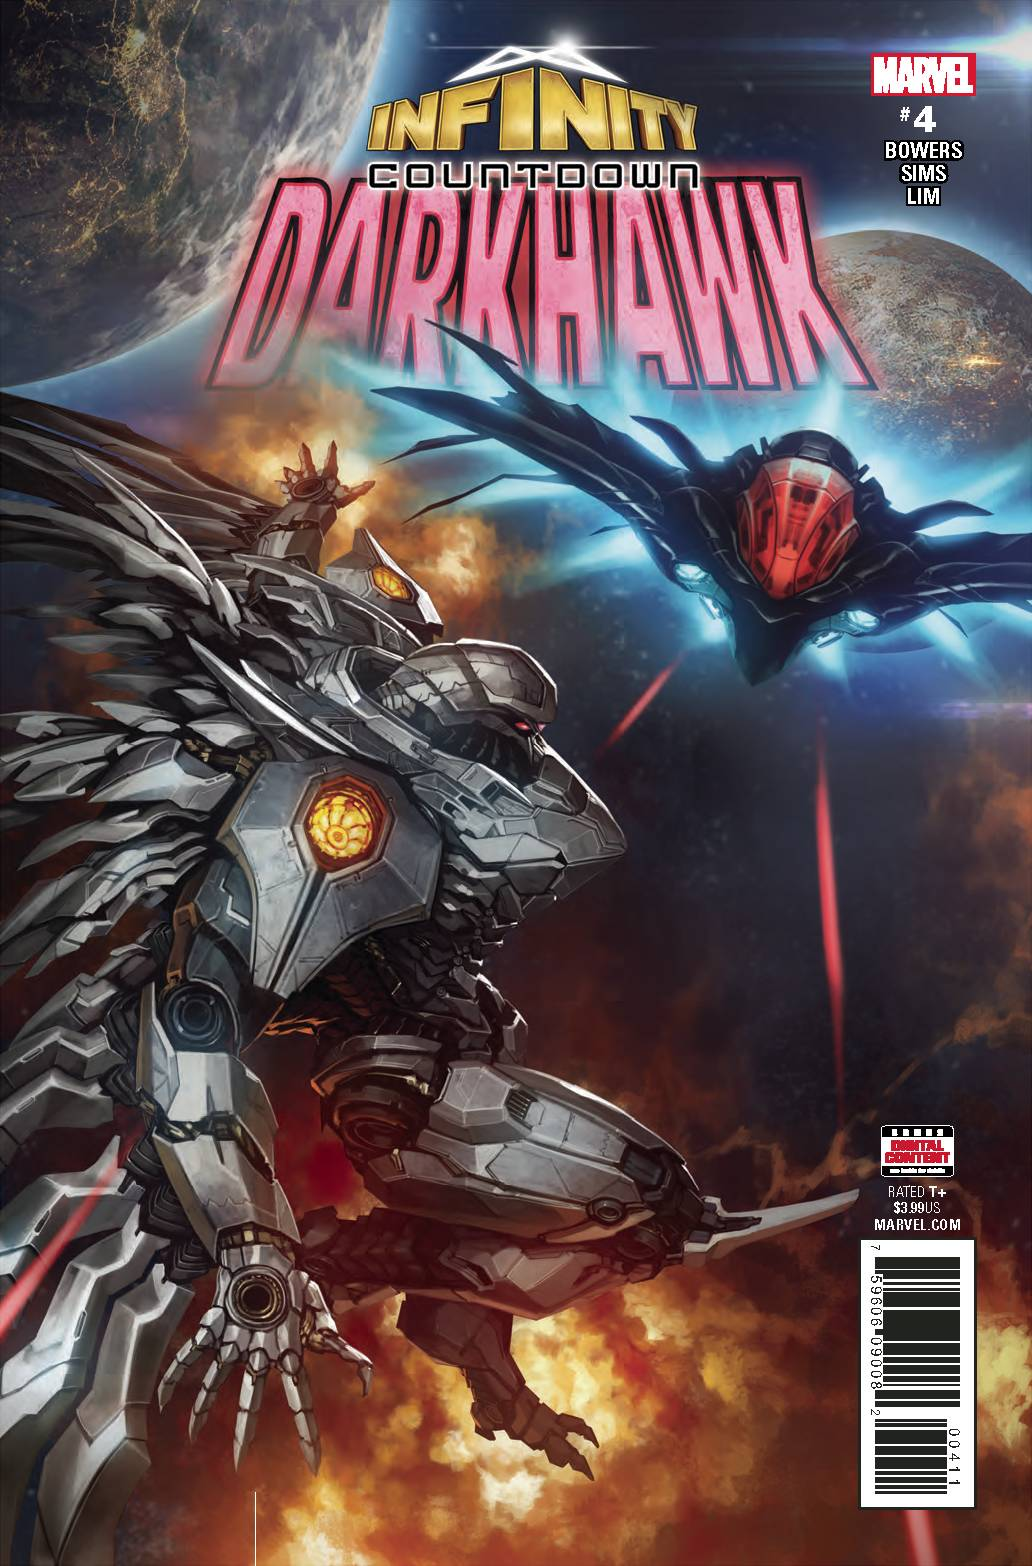 INFINITY COUNTDOWN DARKHAWK #4 (OF 4) (07/11/2018)